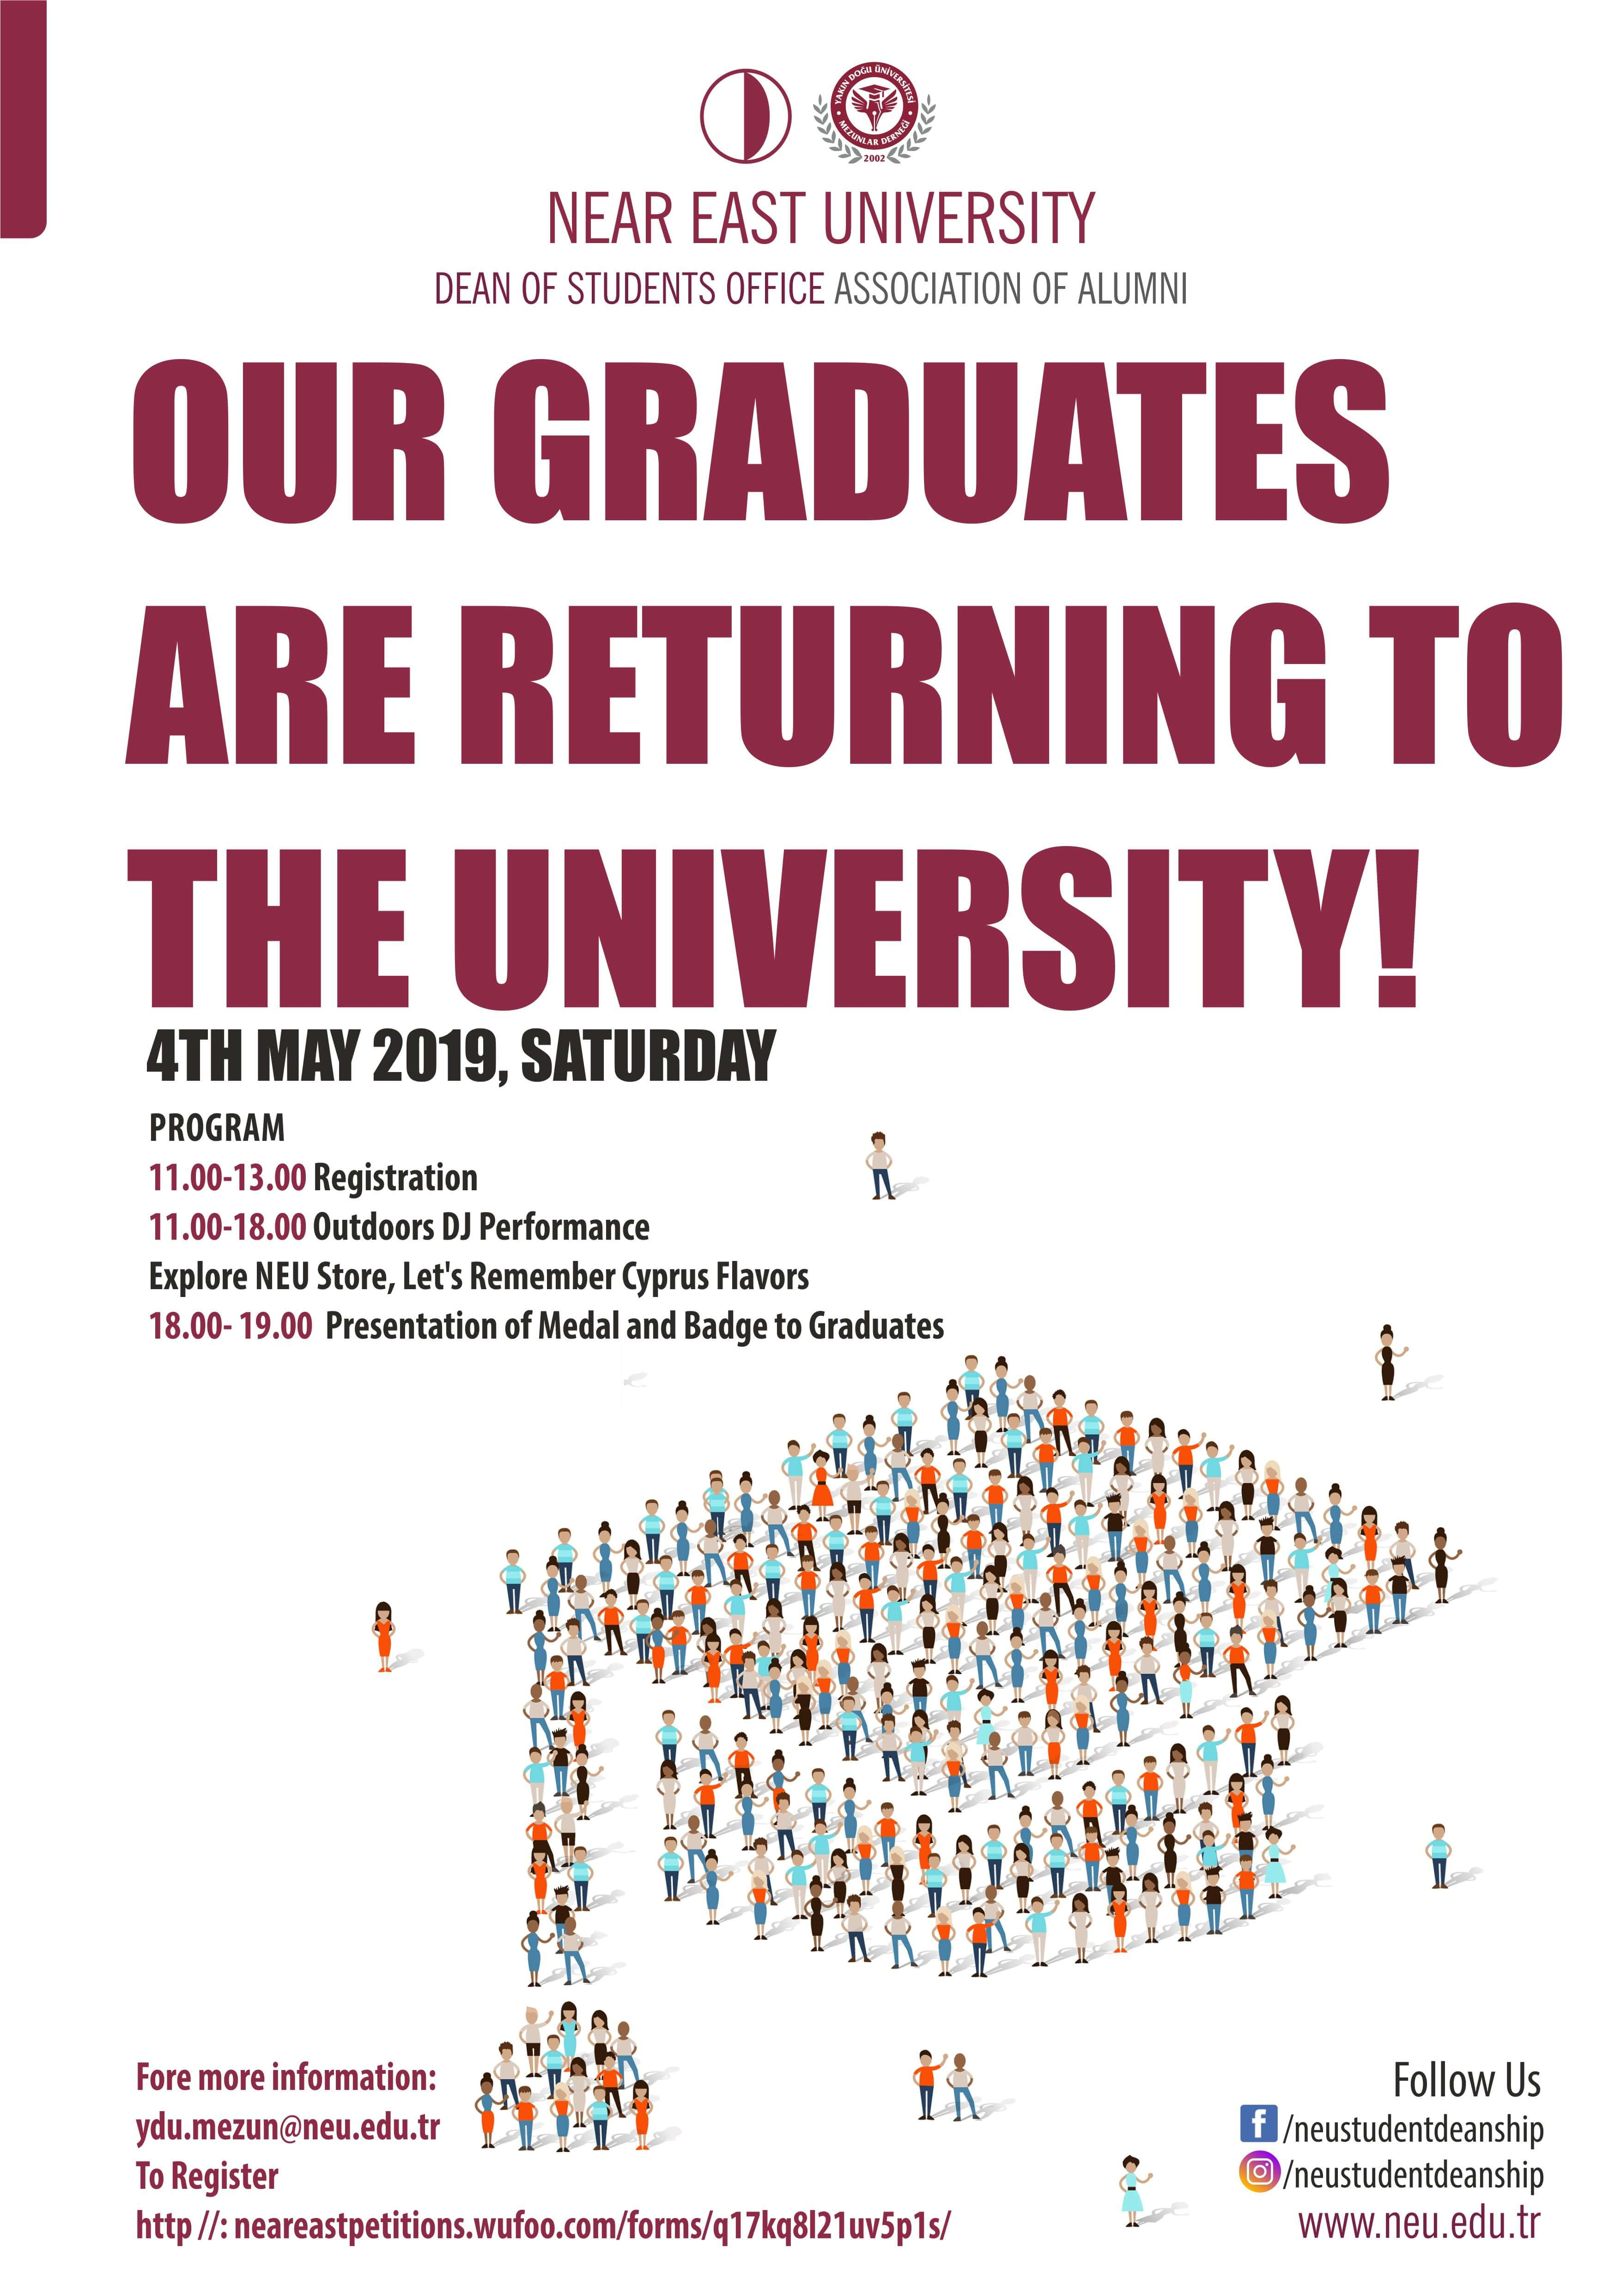 The Excitement of Near East University Graduates' Meeting…The 1st Graduates' Meeting will be held on 4th May